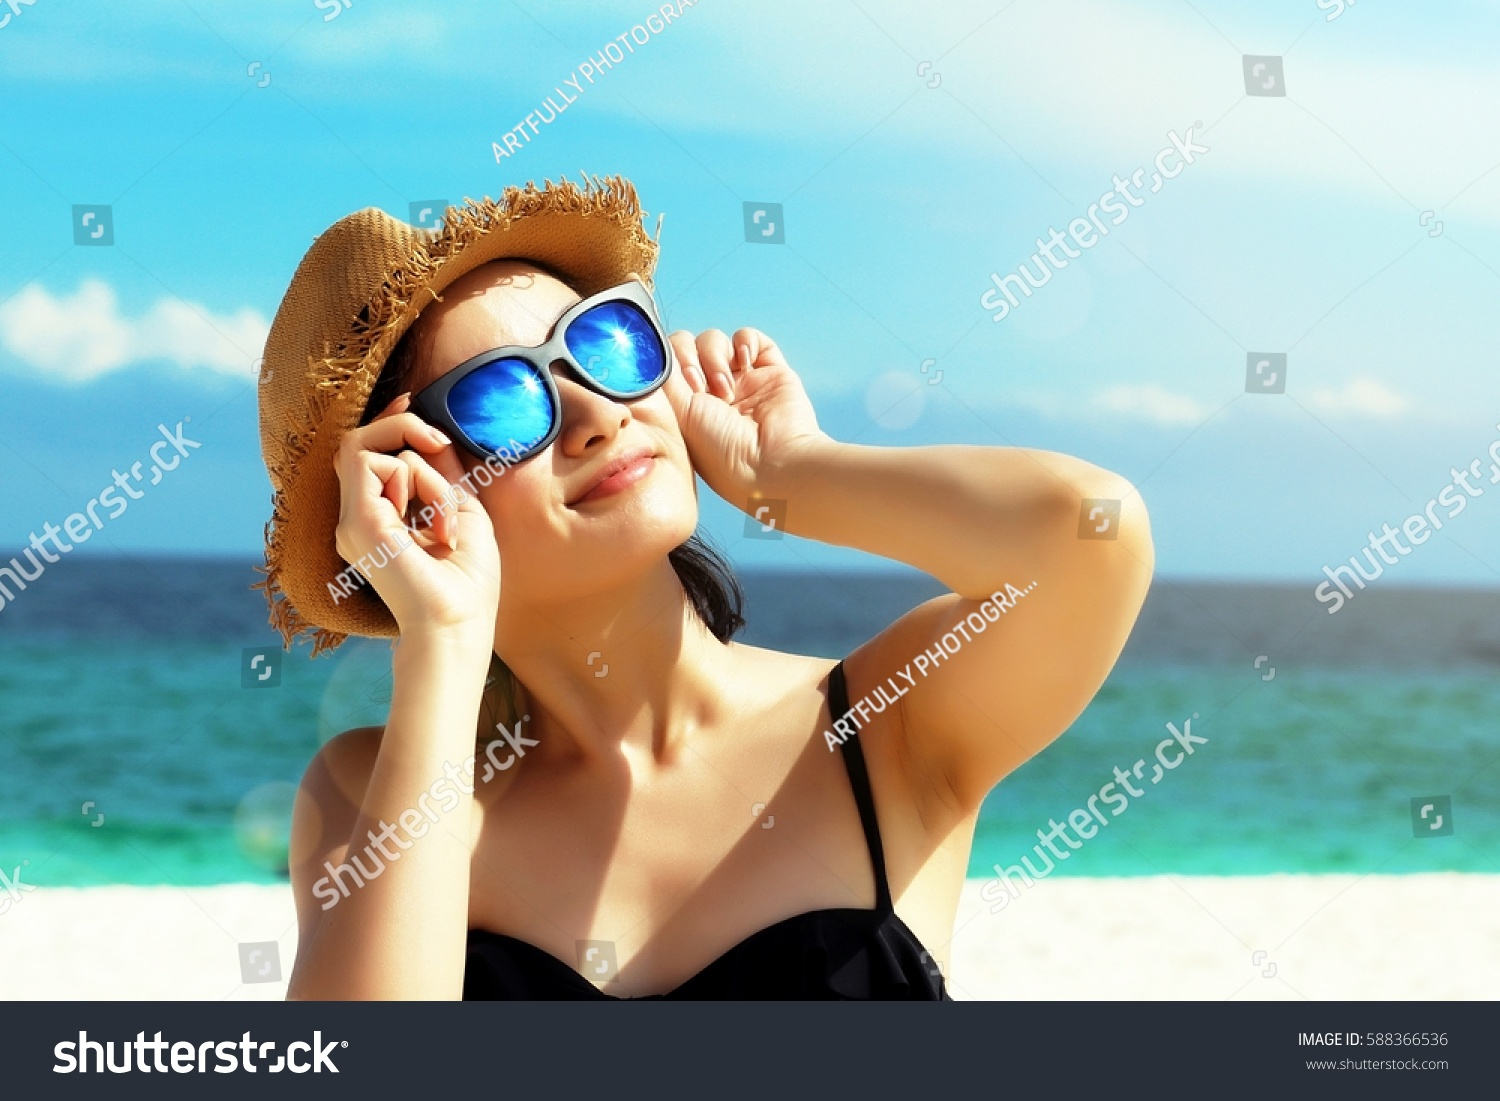 Young female fashion model smiling and wearing big sunglasses on a beach, sun protection and skincare concept. #588366536